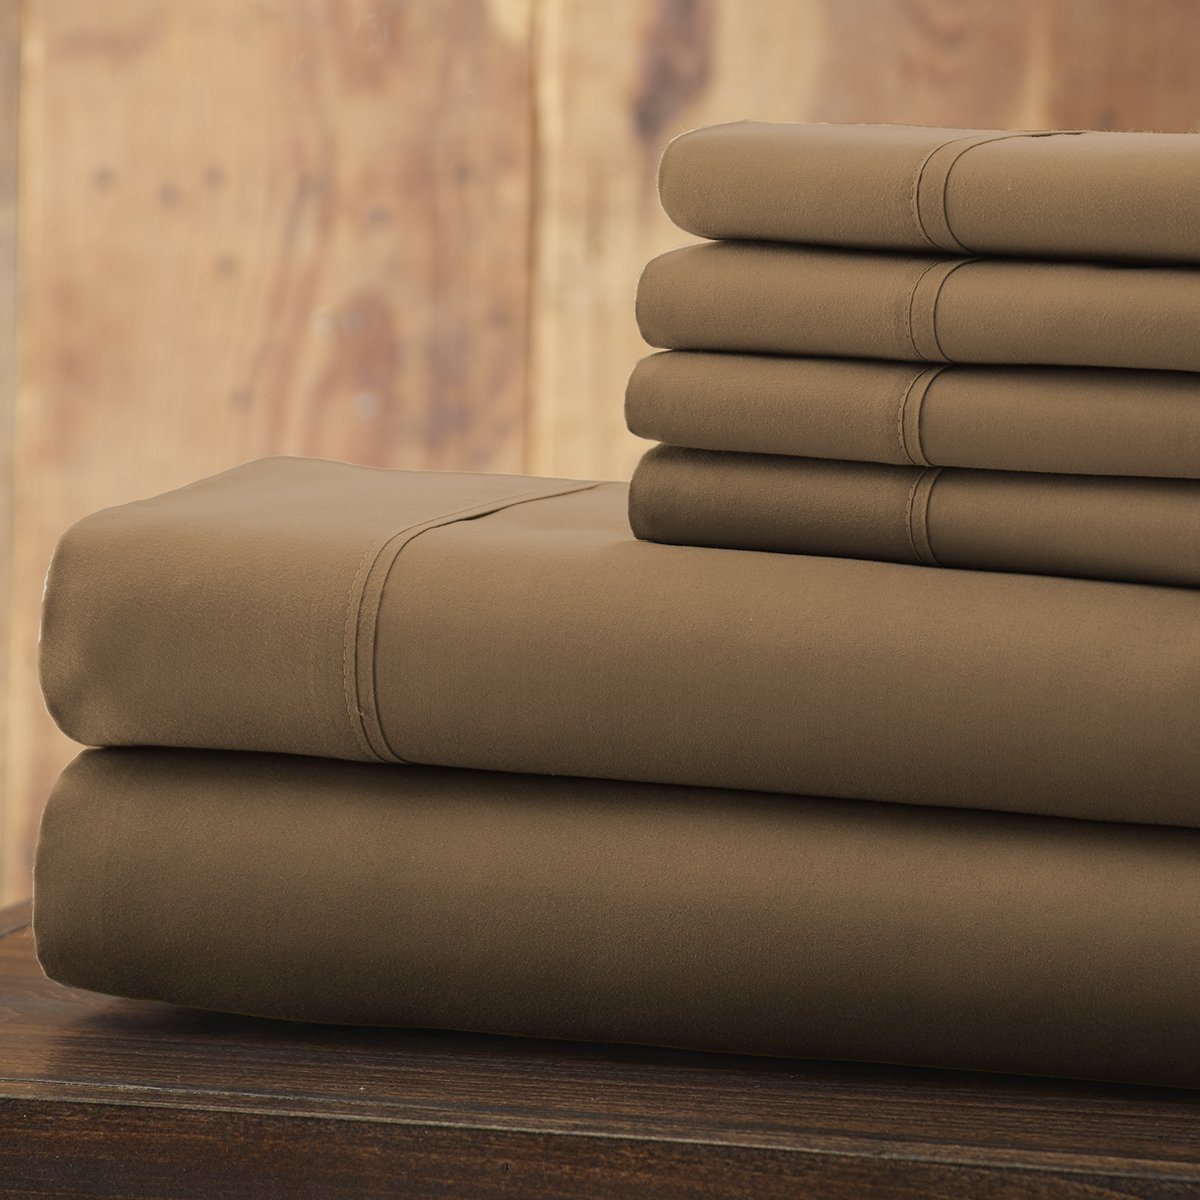 Spirit Linen 6 Piece Everyday Essentials 1800 Series Sheet Set, King, Taupe